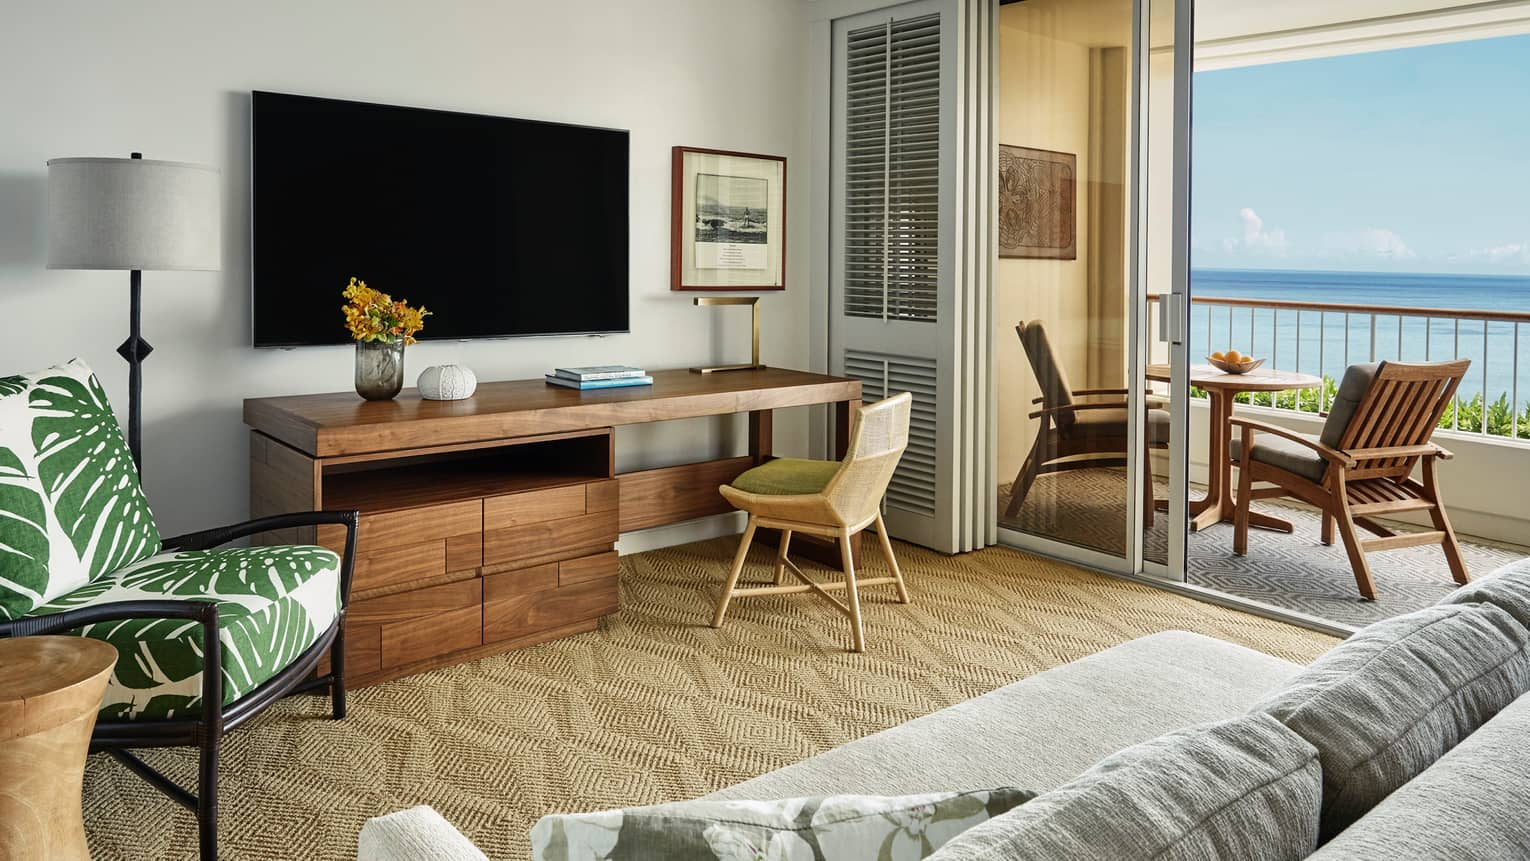 Oceanfront Suite large rustic wood desk under TV, palm print chair, open balcony doors